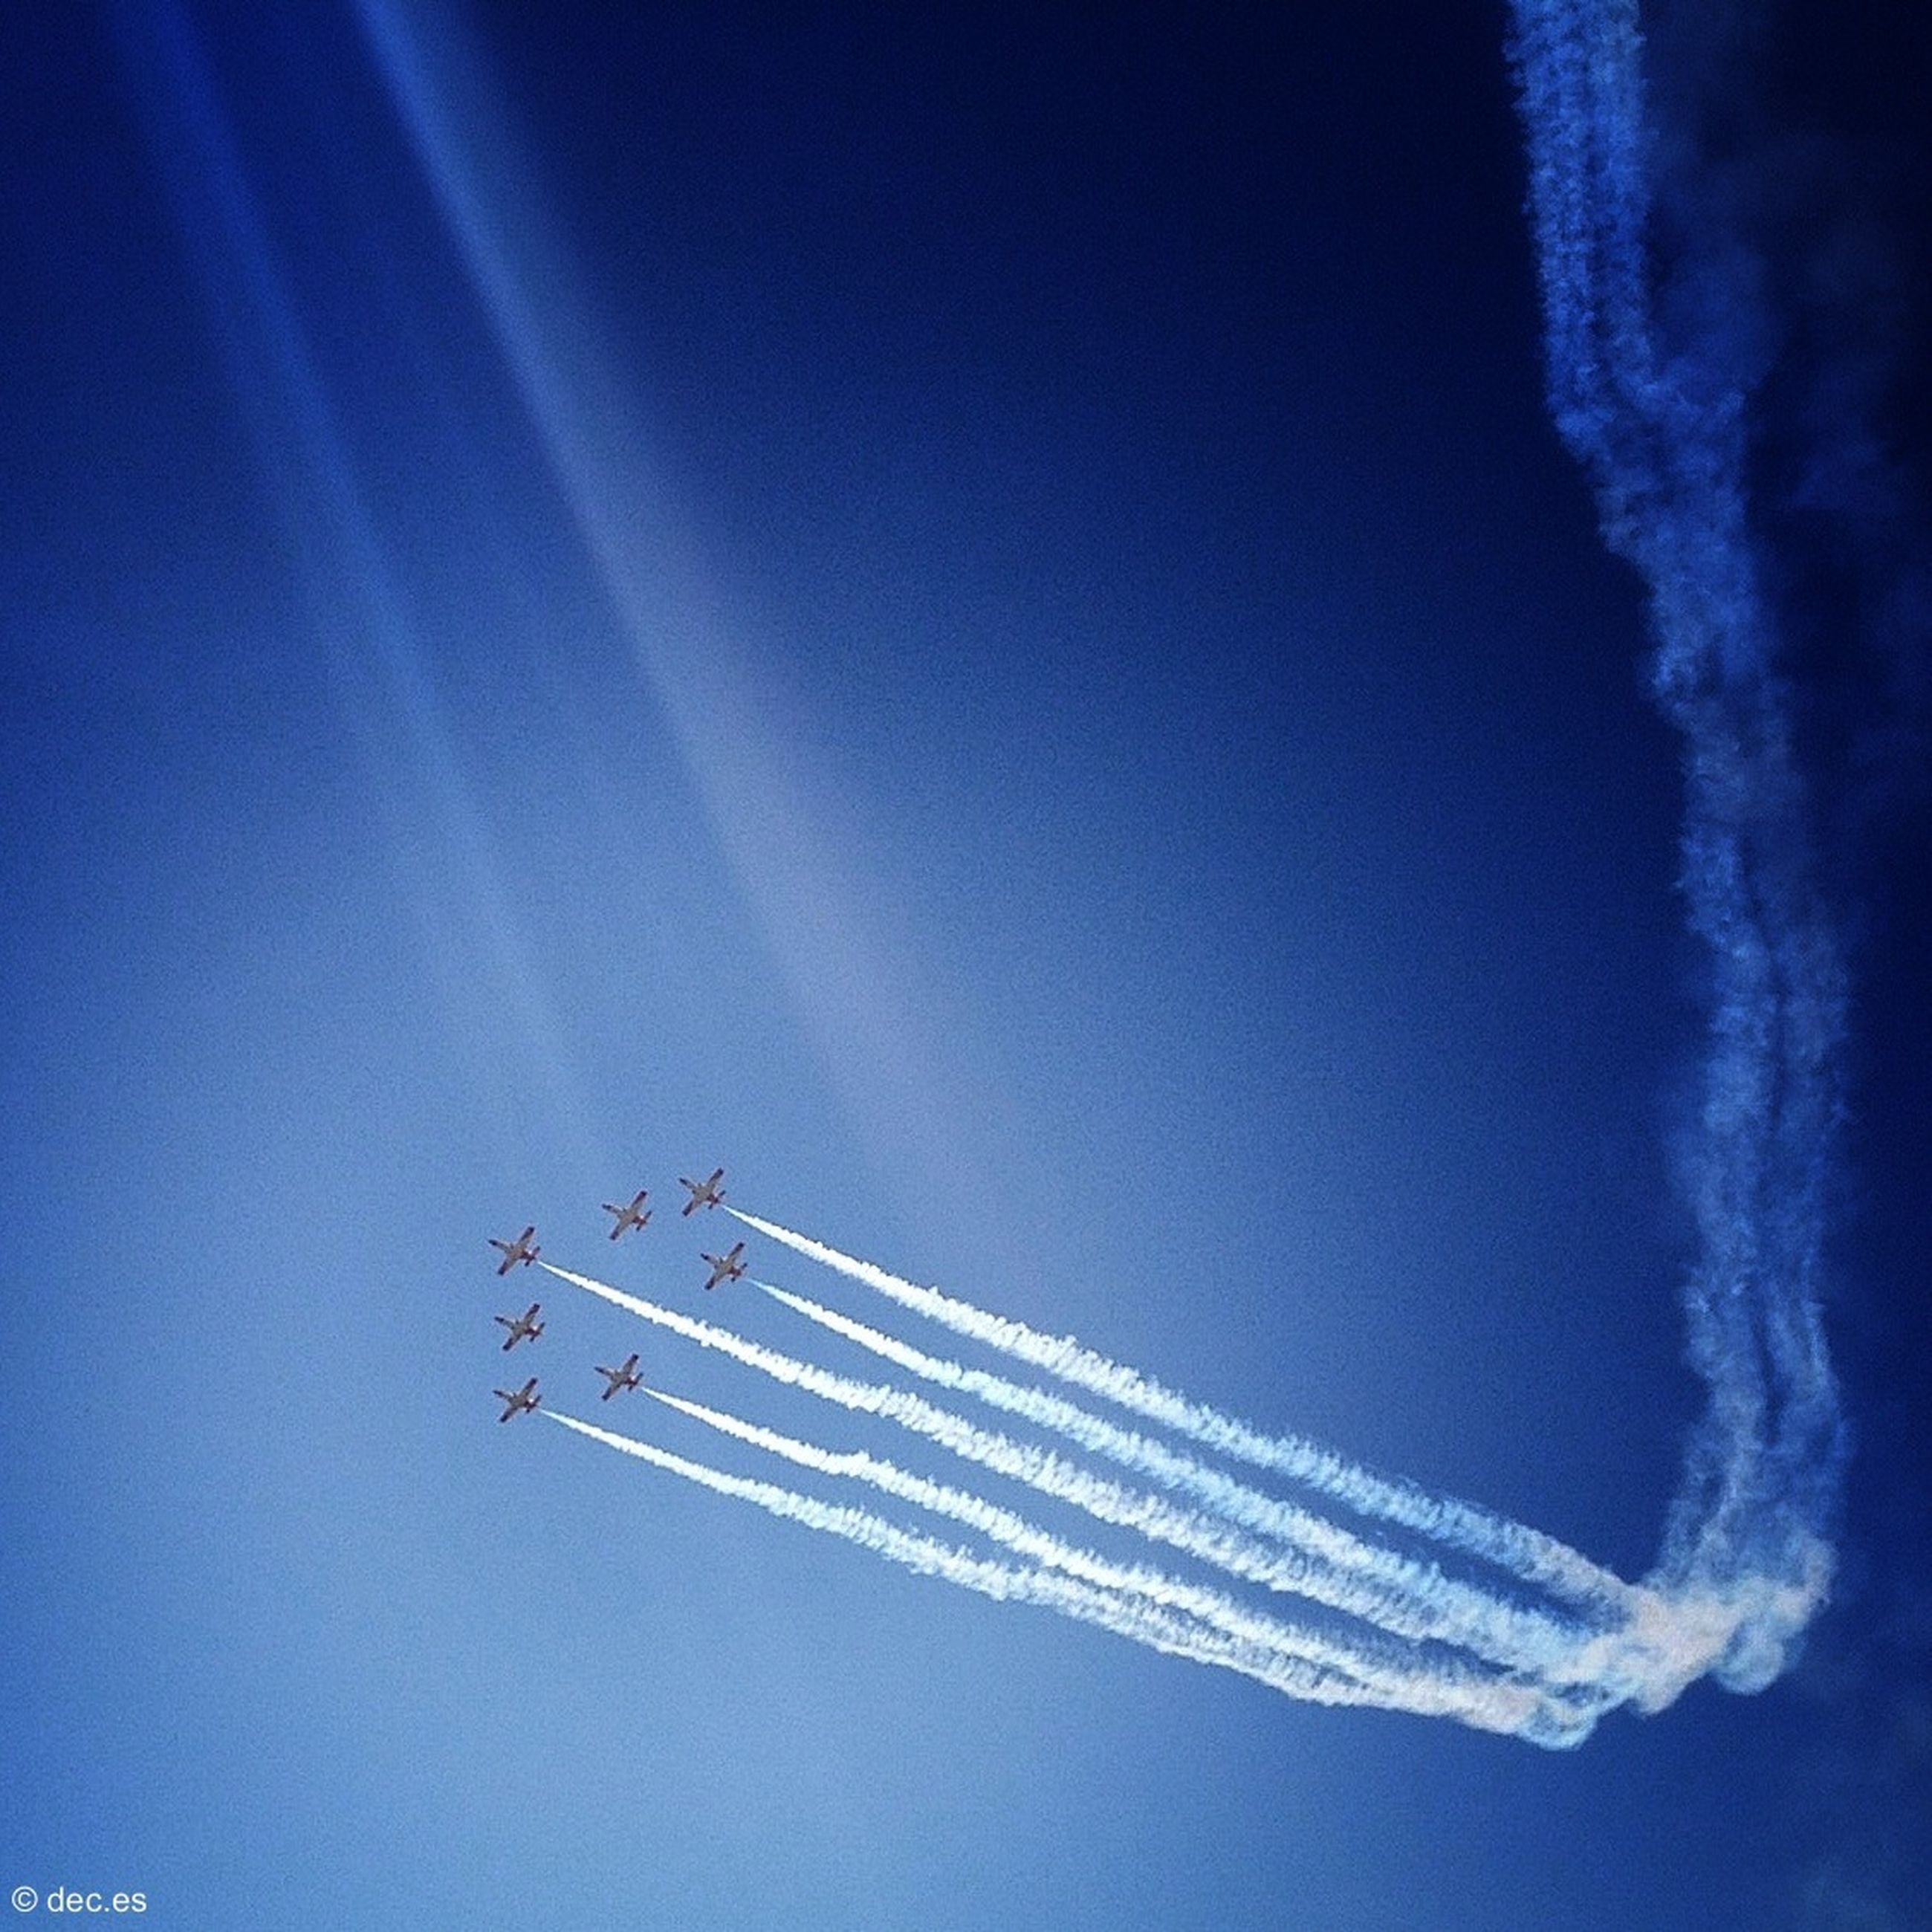 blue, low angle view, sky, vapor trail, air vehicle, airplane, transportation, clear sky, copy space, mode of transport, flying, outdoors, no people, smoke - physical structure, travel, day, nature, motion, speed, cloud - sky